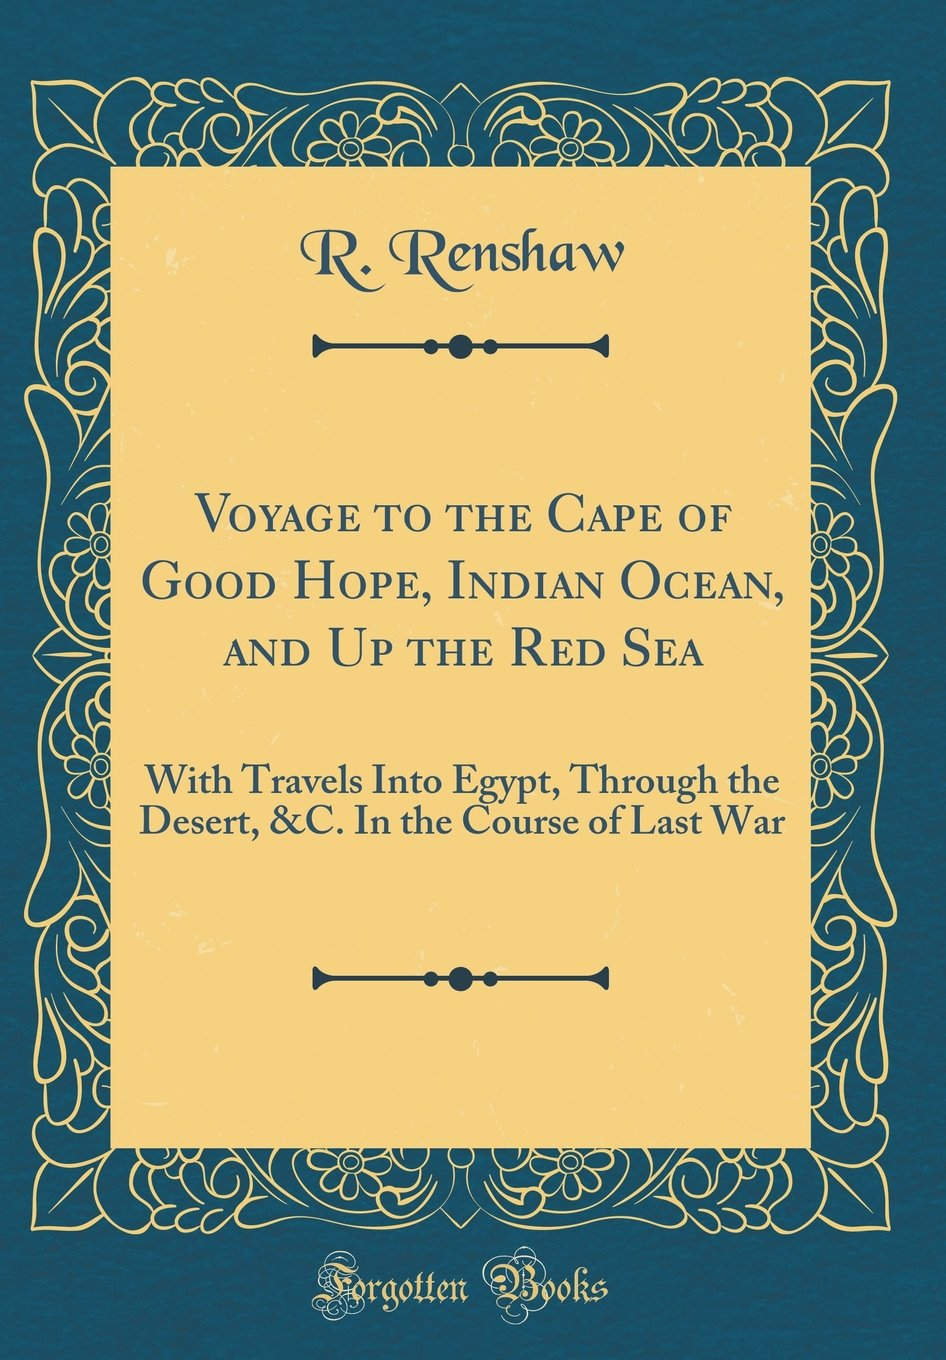 Download Voyage to the Cape of Good Hope, Indian Ocean, and Up the Red Sea: With Travels Into Egypt, Through the Desert, &C. In the Course of Last War (Classic Reprint) ebook